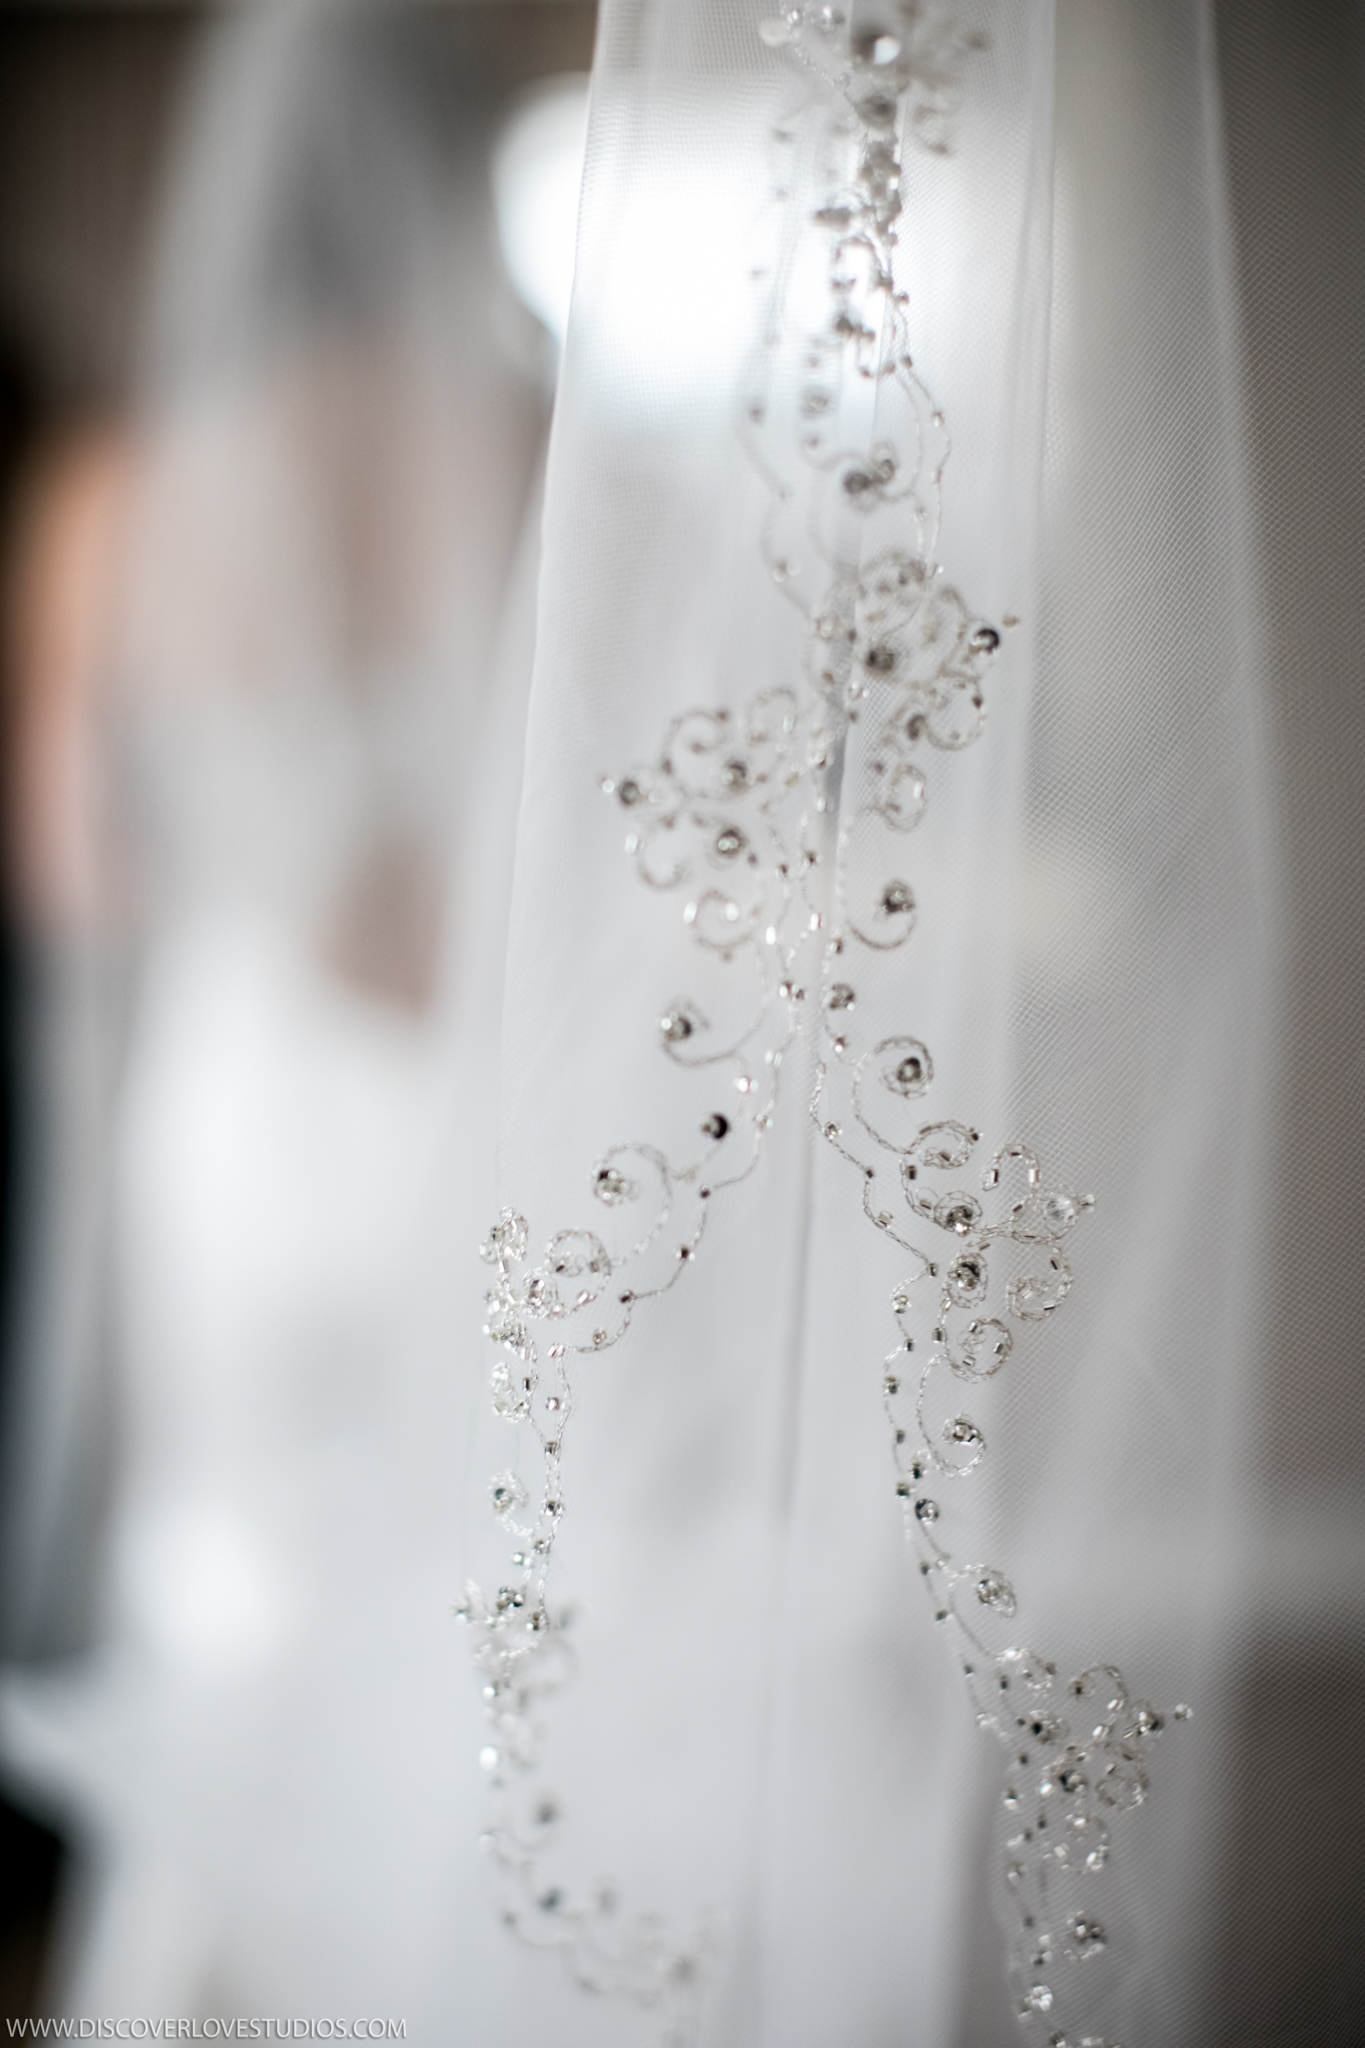 Discover Love Studios captures detail shot of bridal veil before wedding at the Mint Museum Uptown